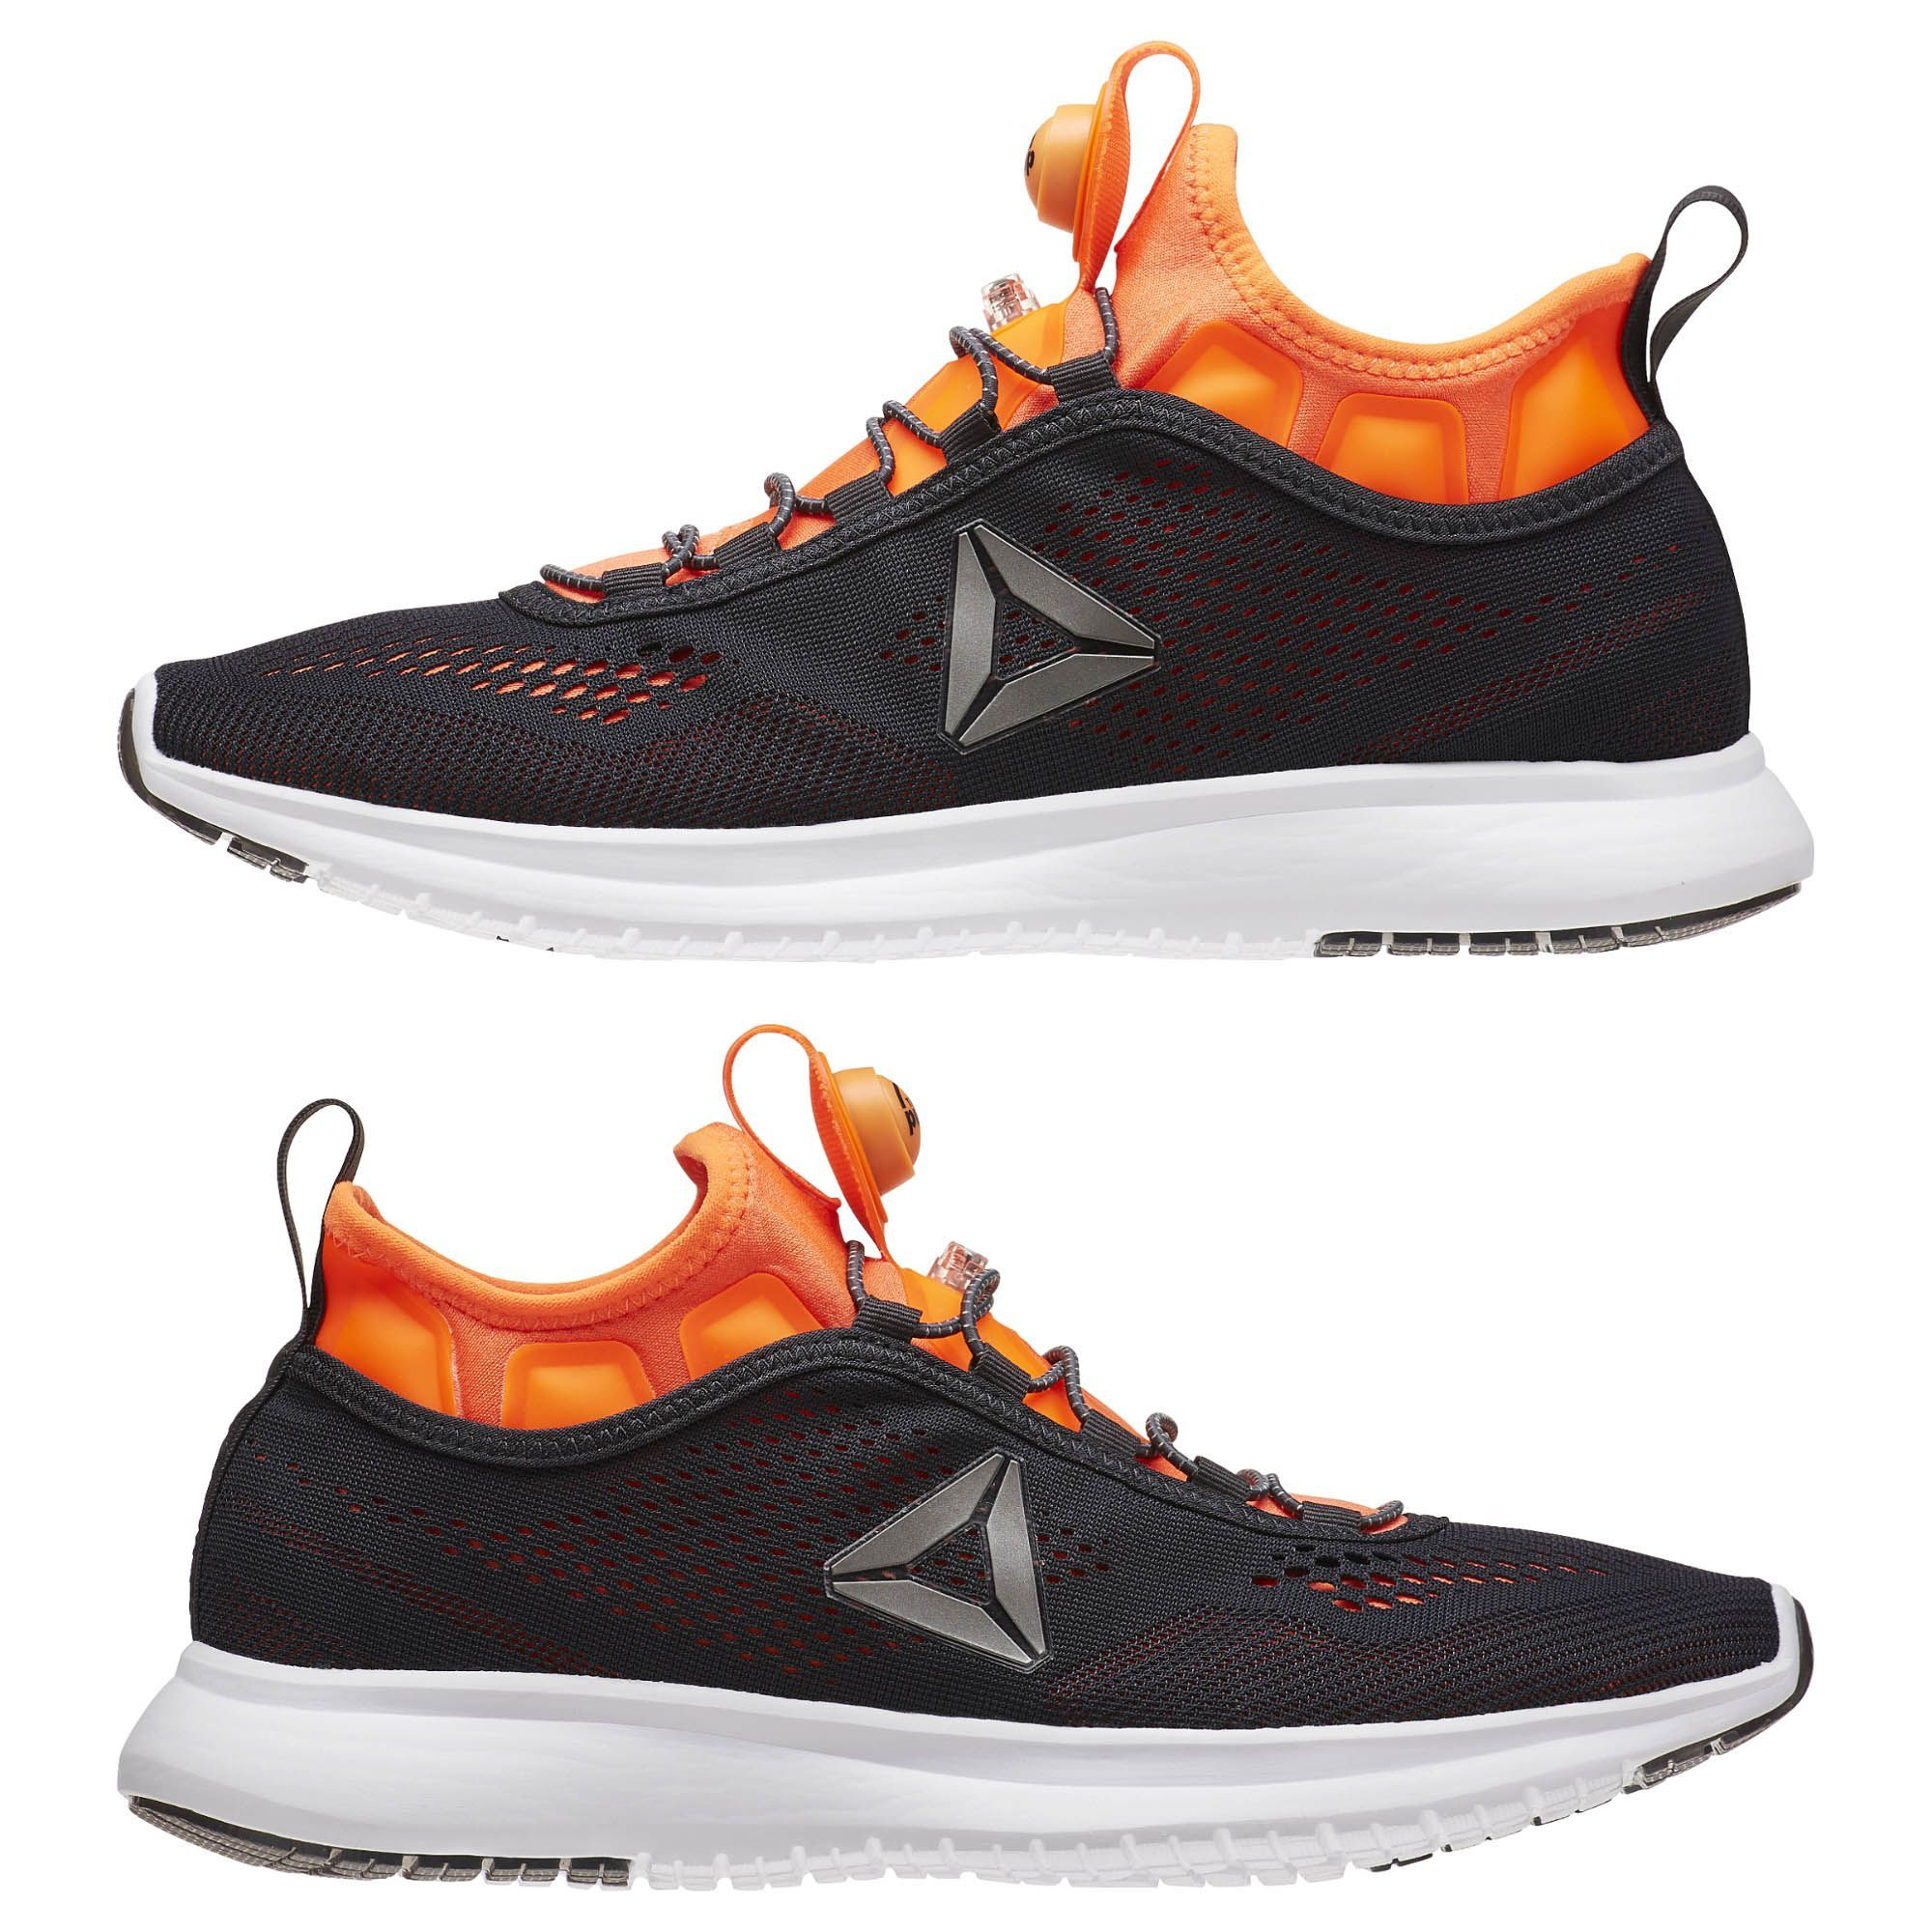 Pump Shoes Price India Running Reebok On In Plus Amazon Tech 5jA34RL